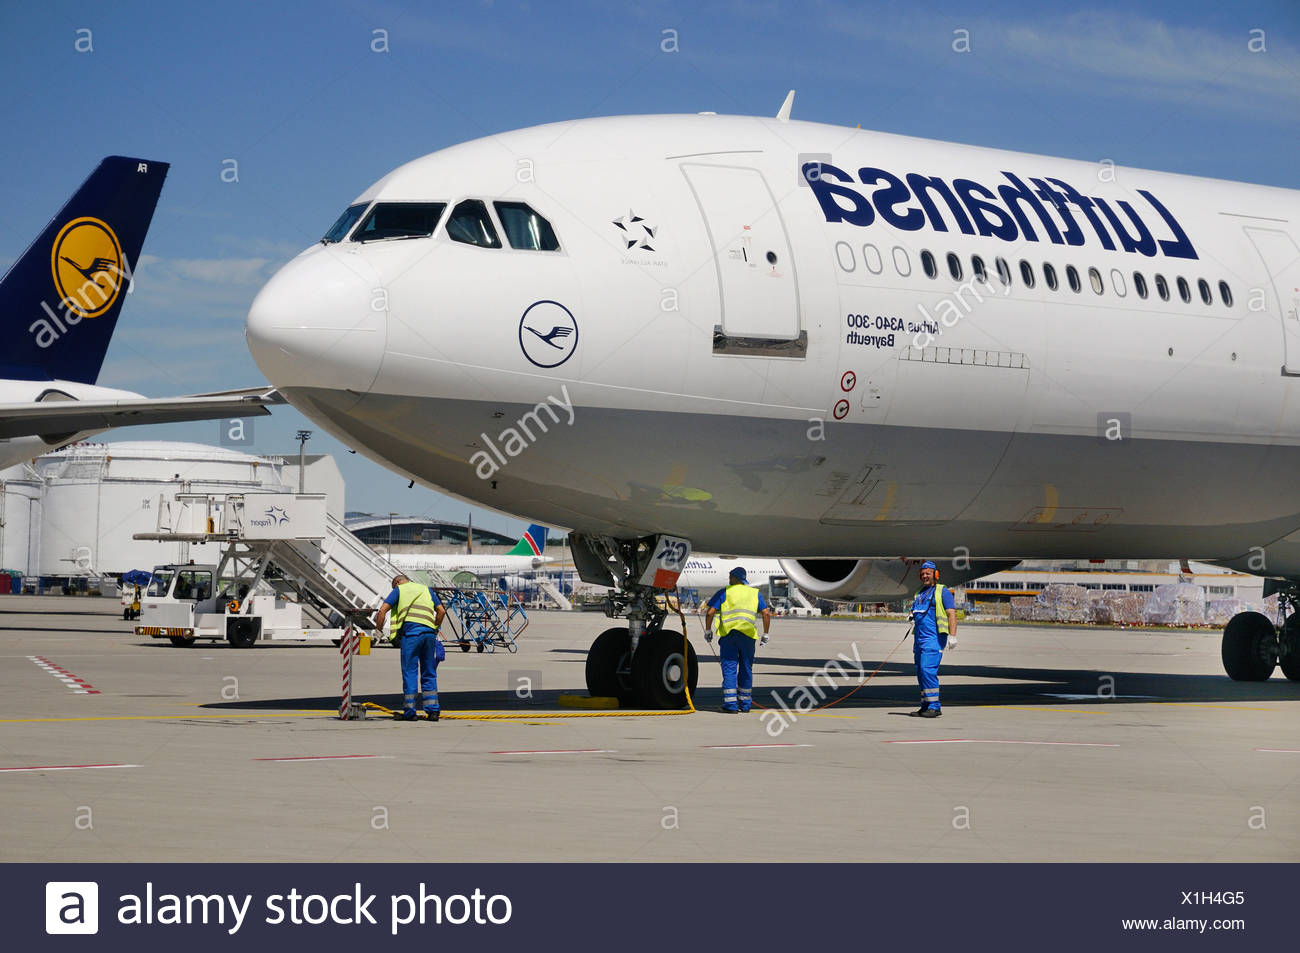 Maintenance personnel next to a Lufthansa plane - Stock Image